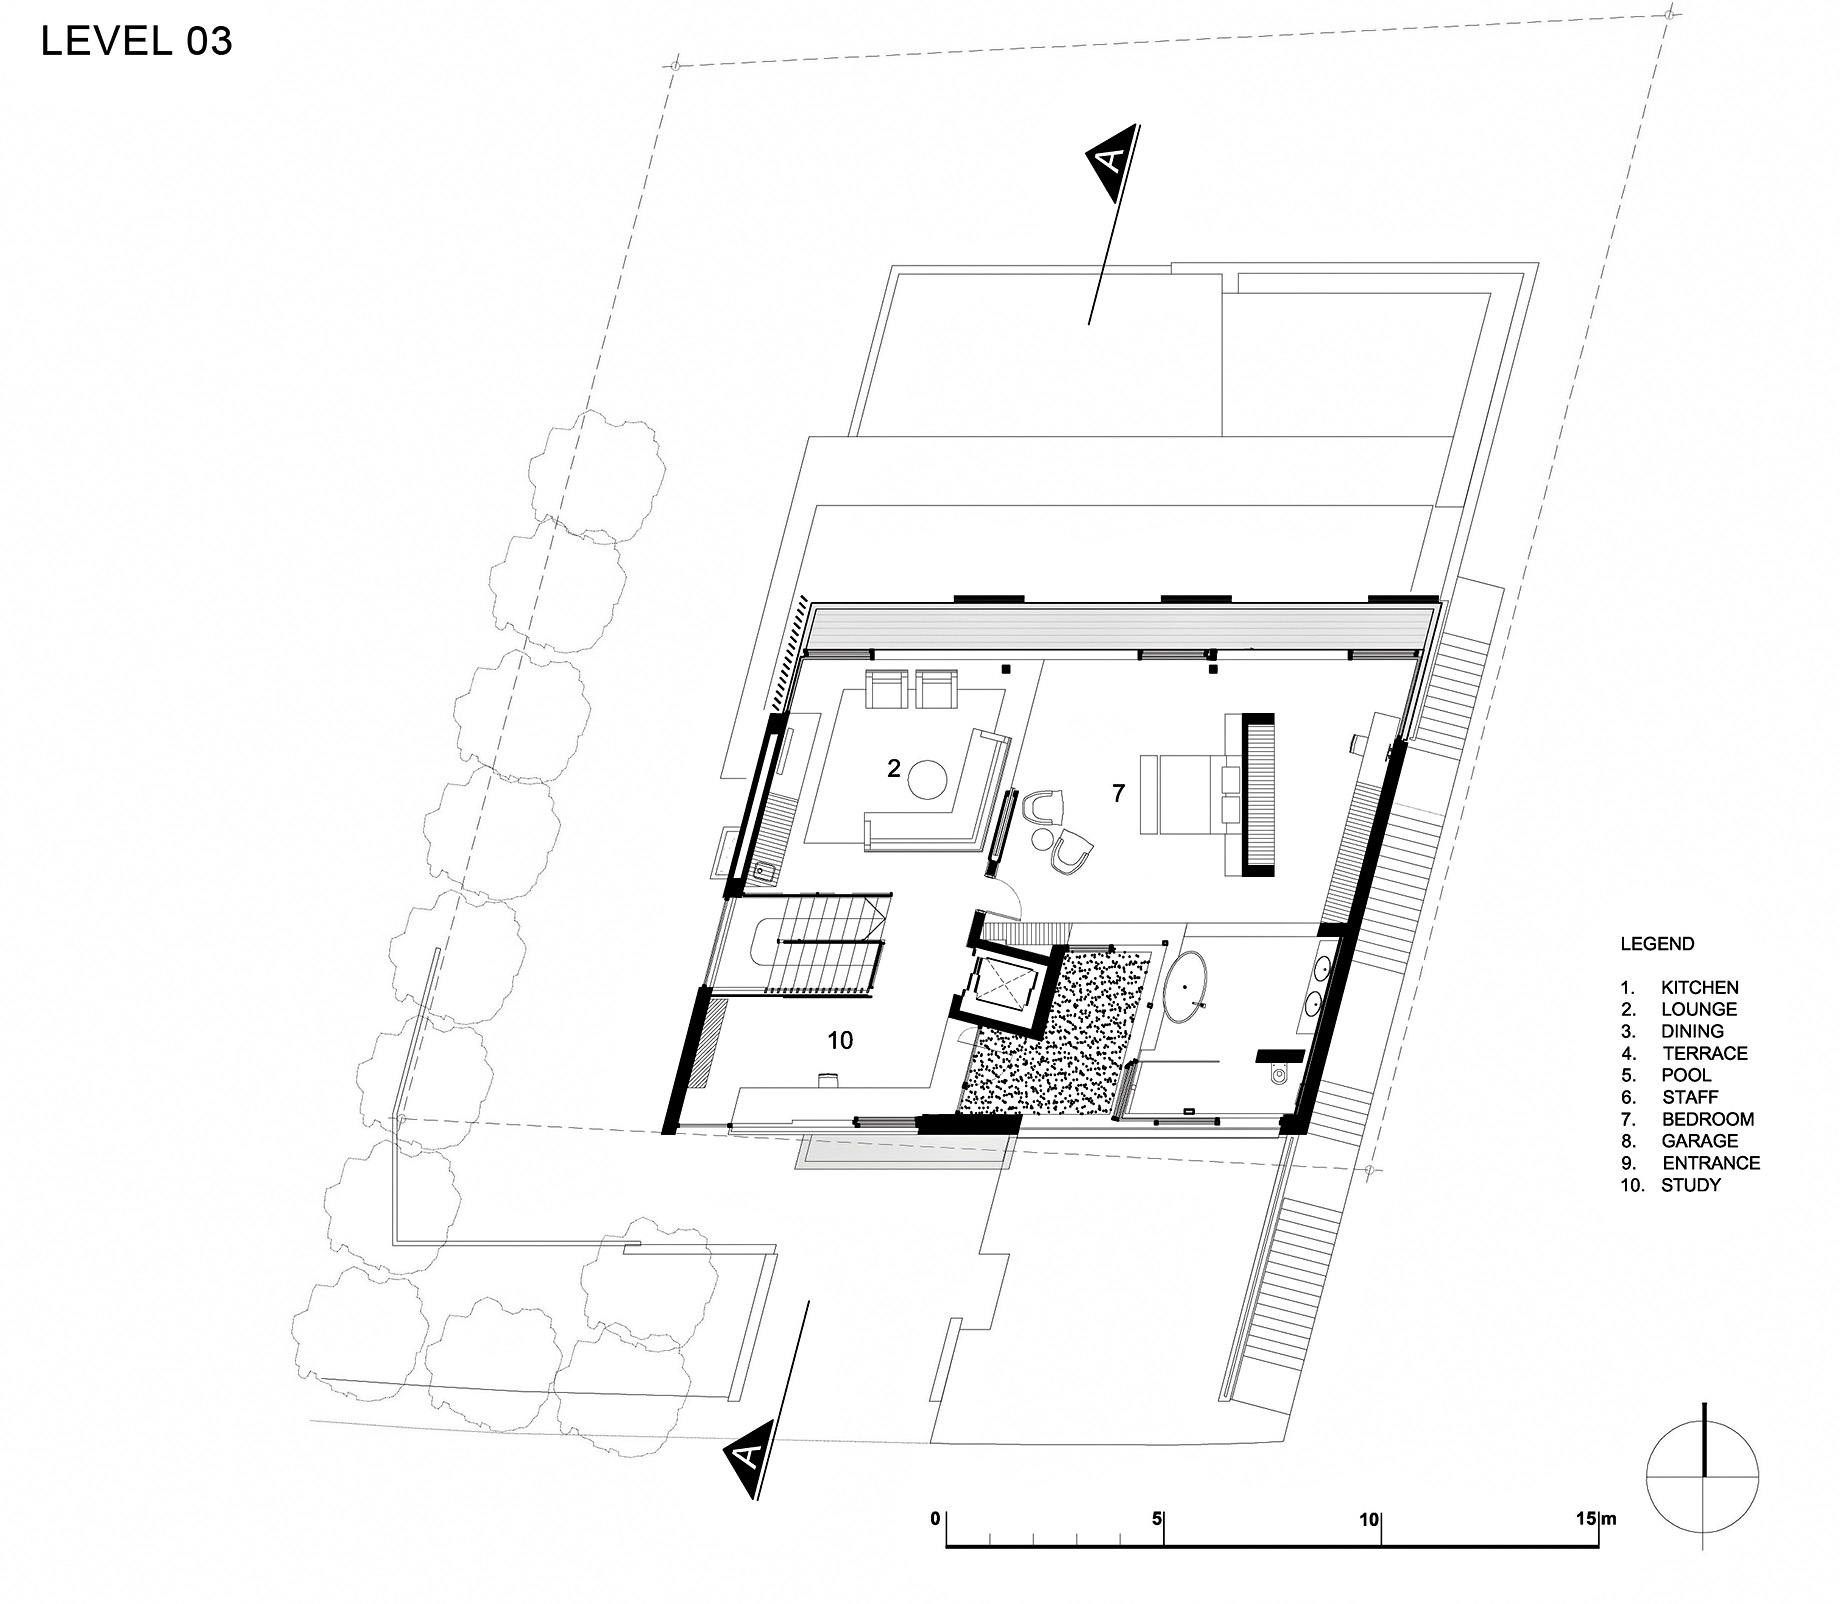 Floor Plans - Level 3 - Head Road 1816 - Fresnaye, Cape Town, Western Cape, South Africa